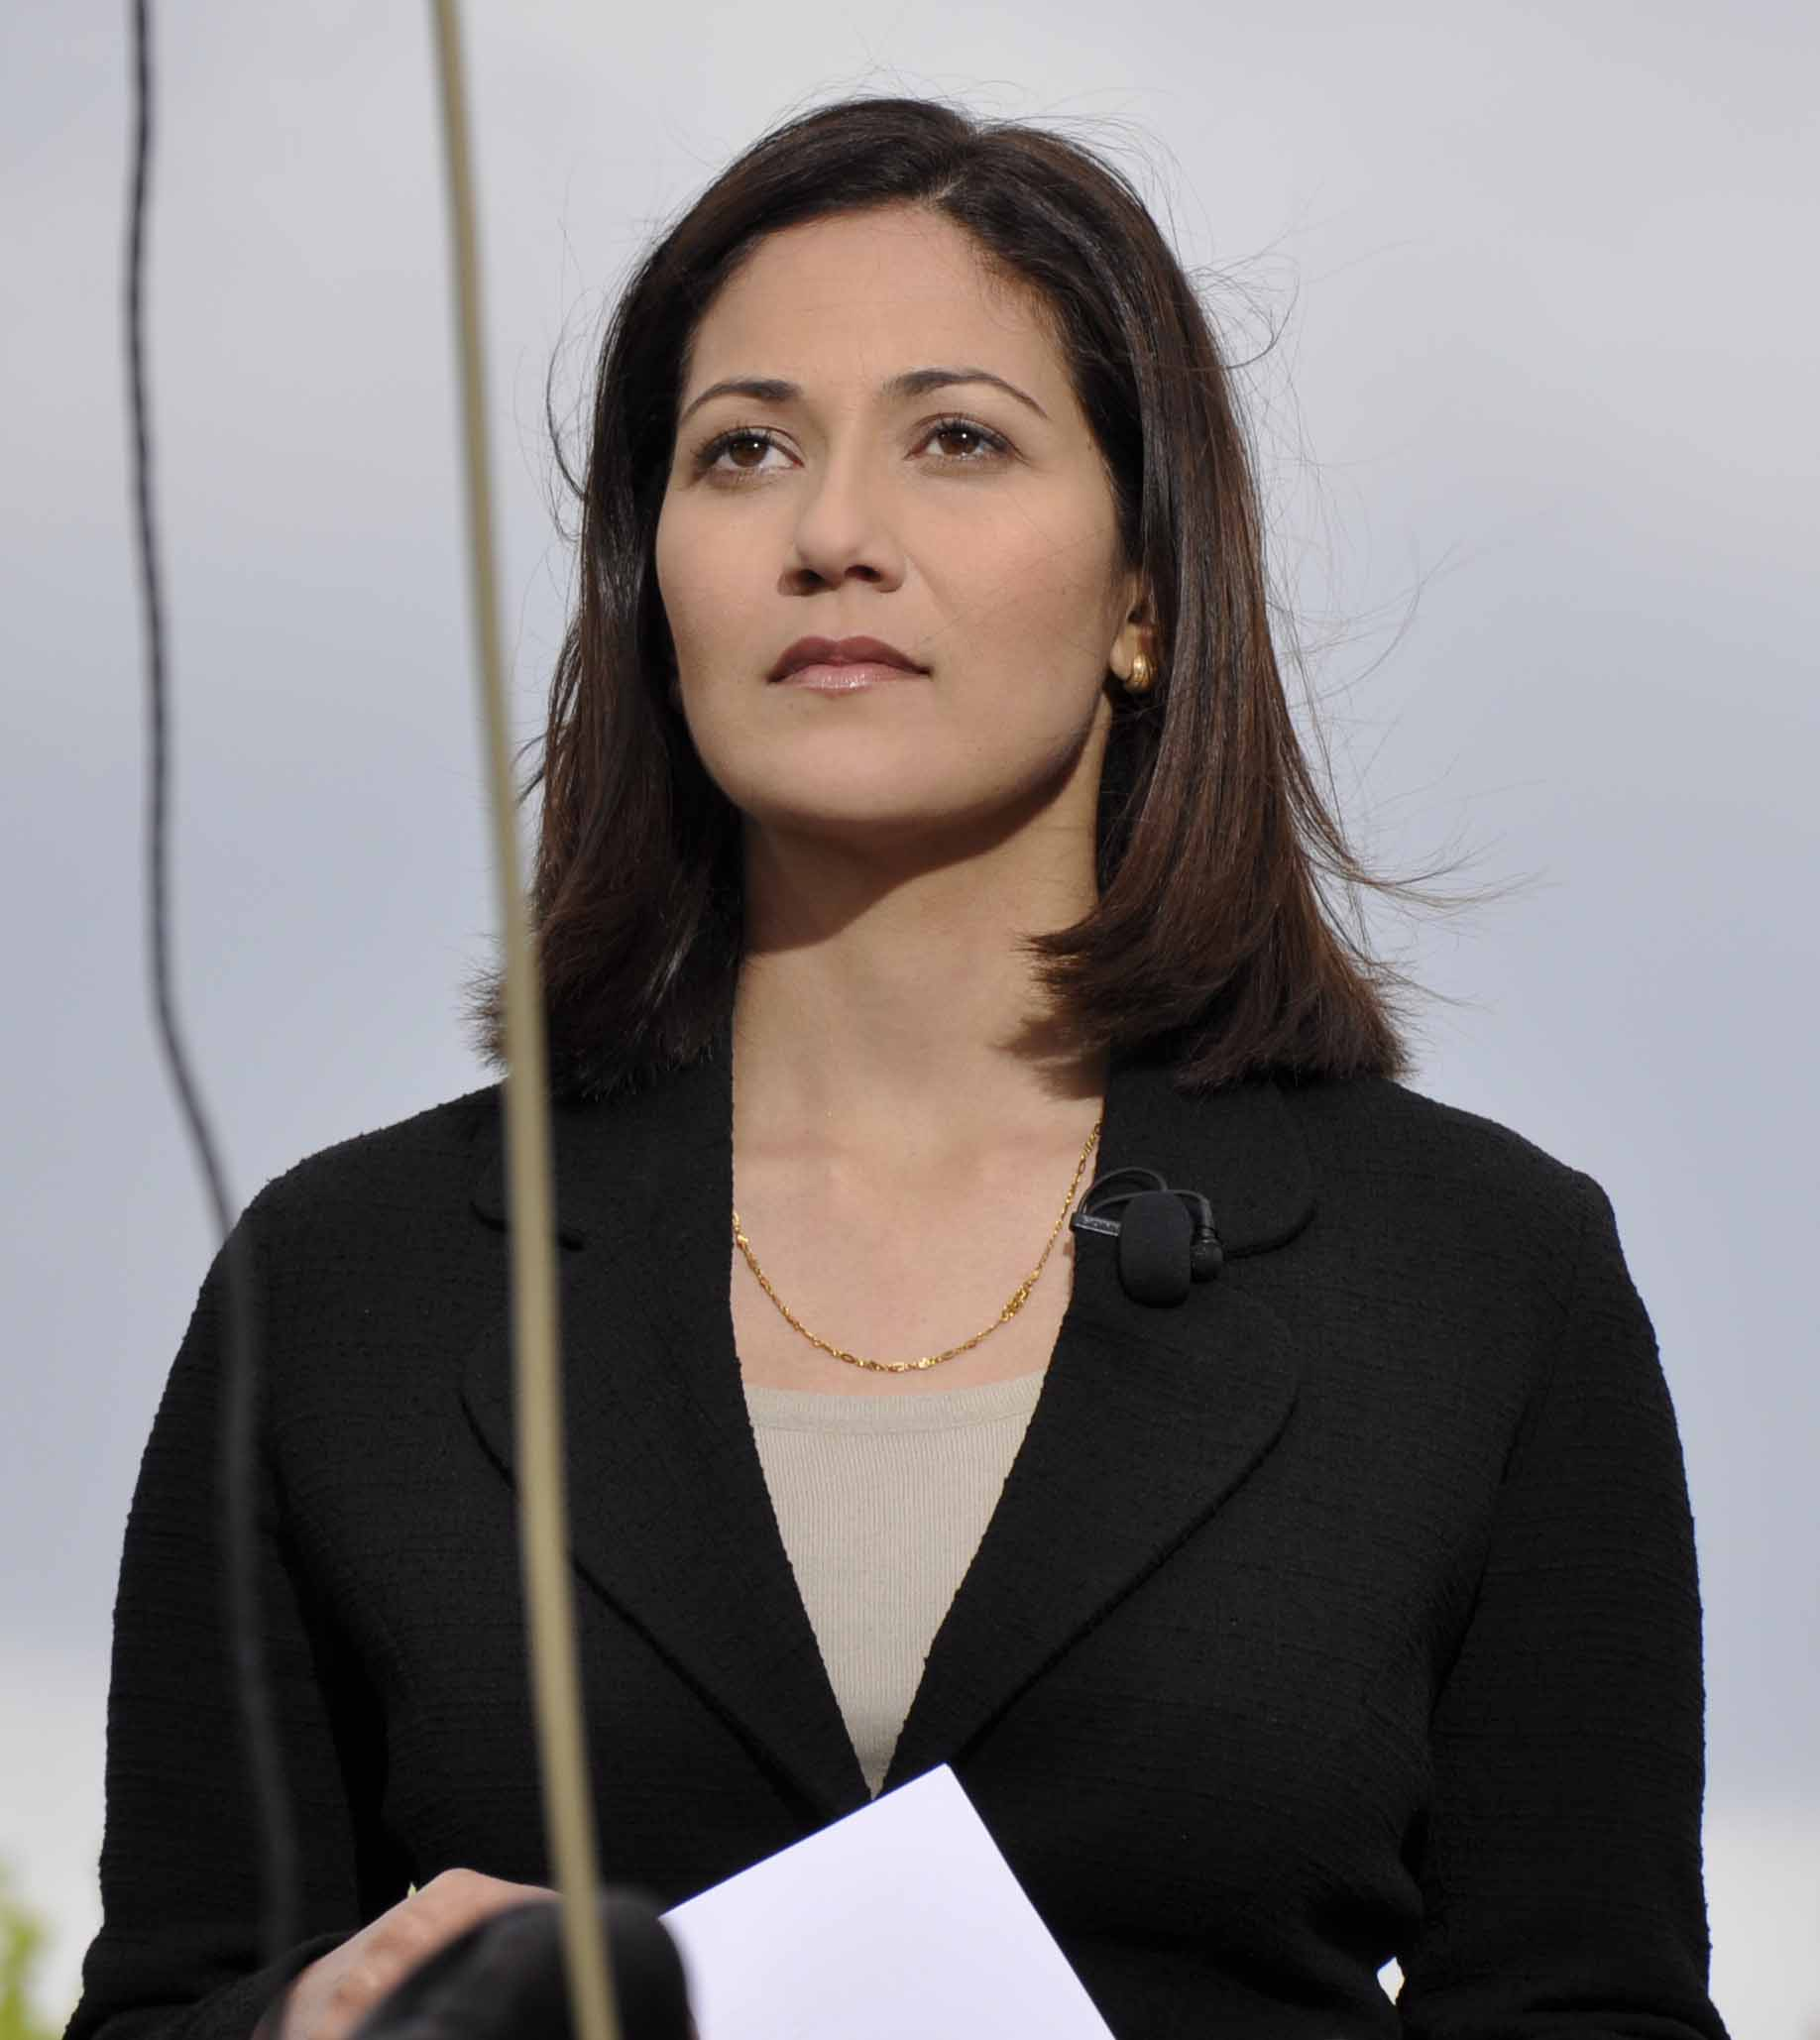 Mishal Husain - Wikipedia, the free encyclopedia